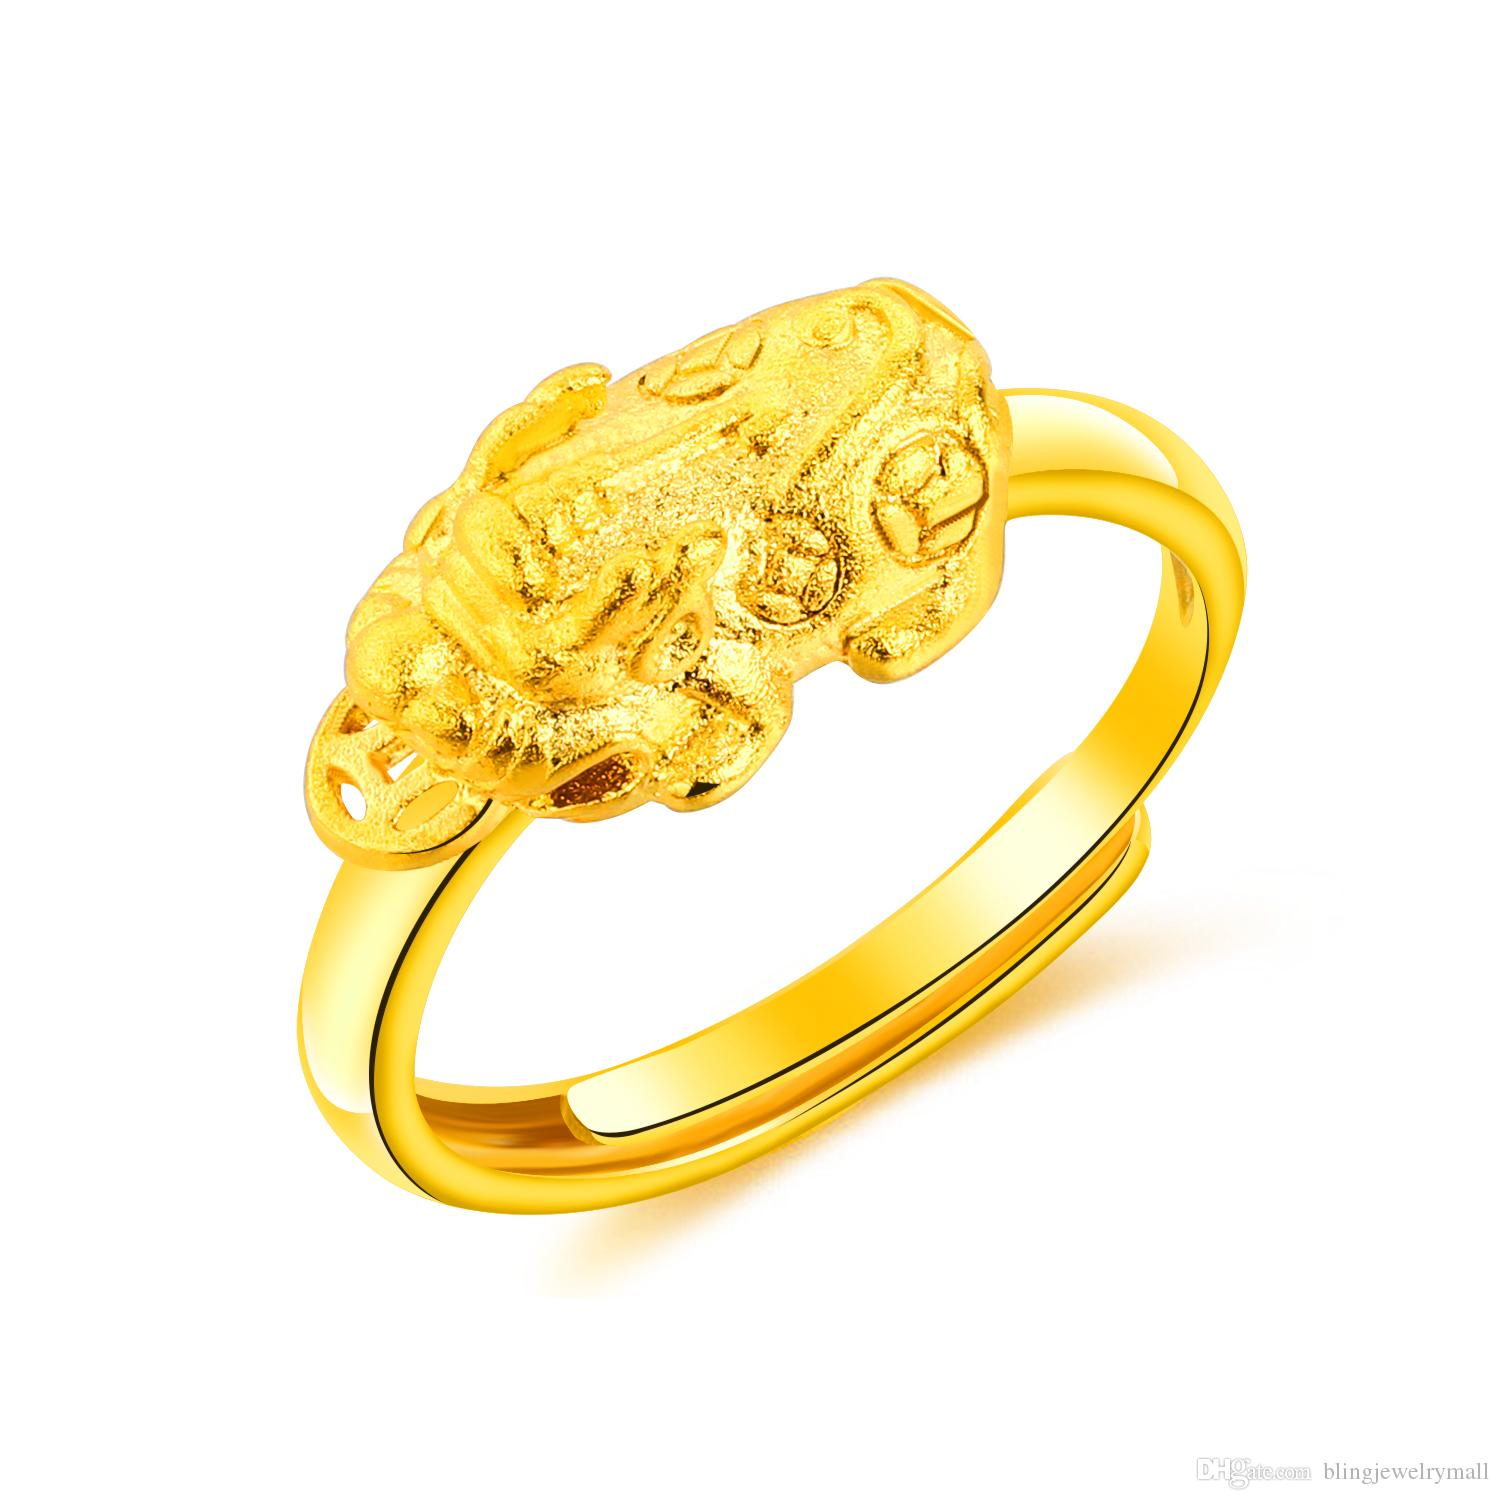 wedding new ring dp wholesale engagement jewelry amazon traditional the gold rings karat com